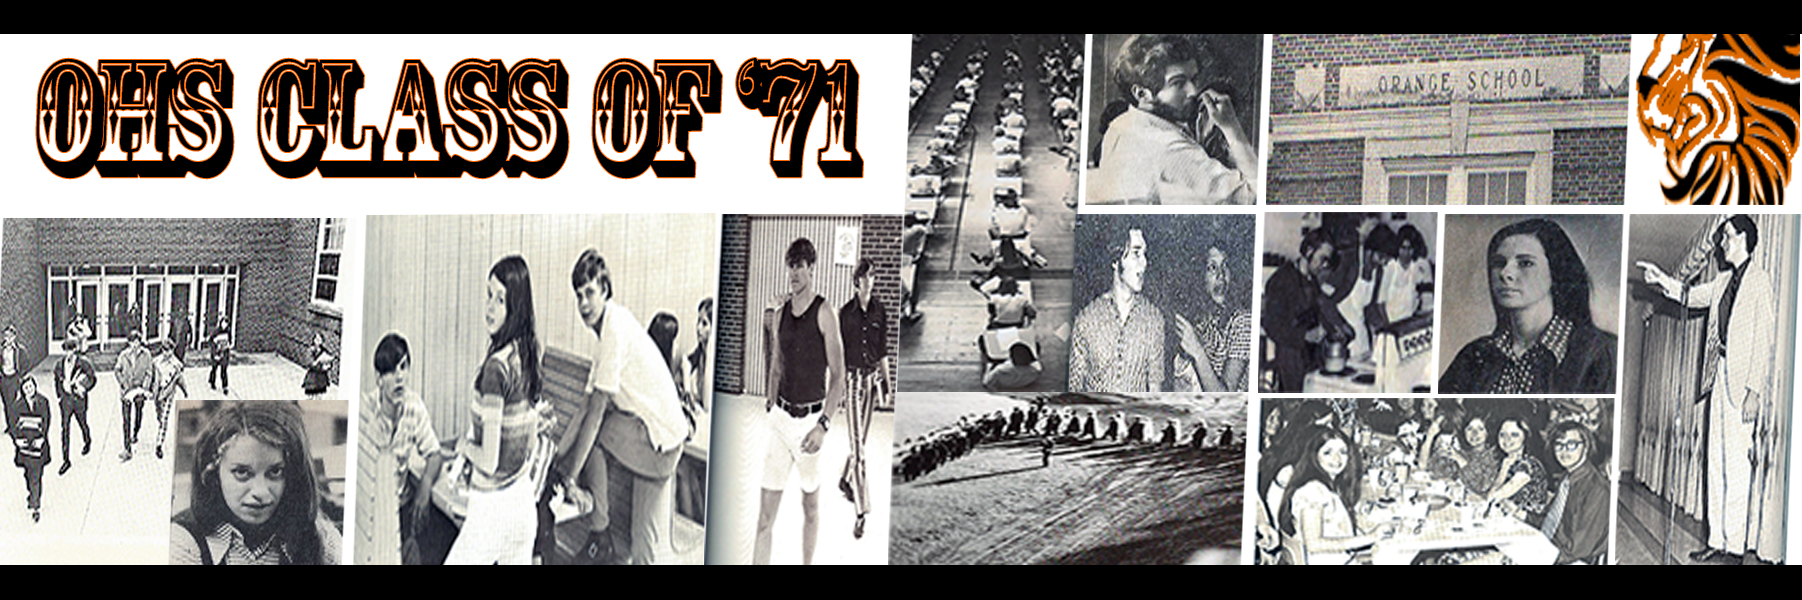 OHS Class of 71 montage